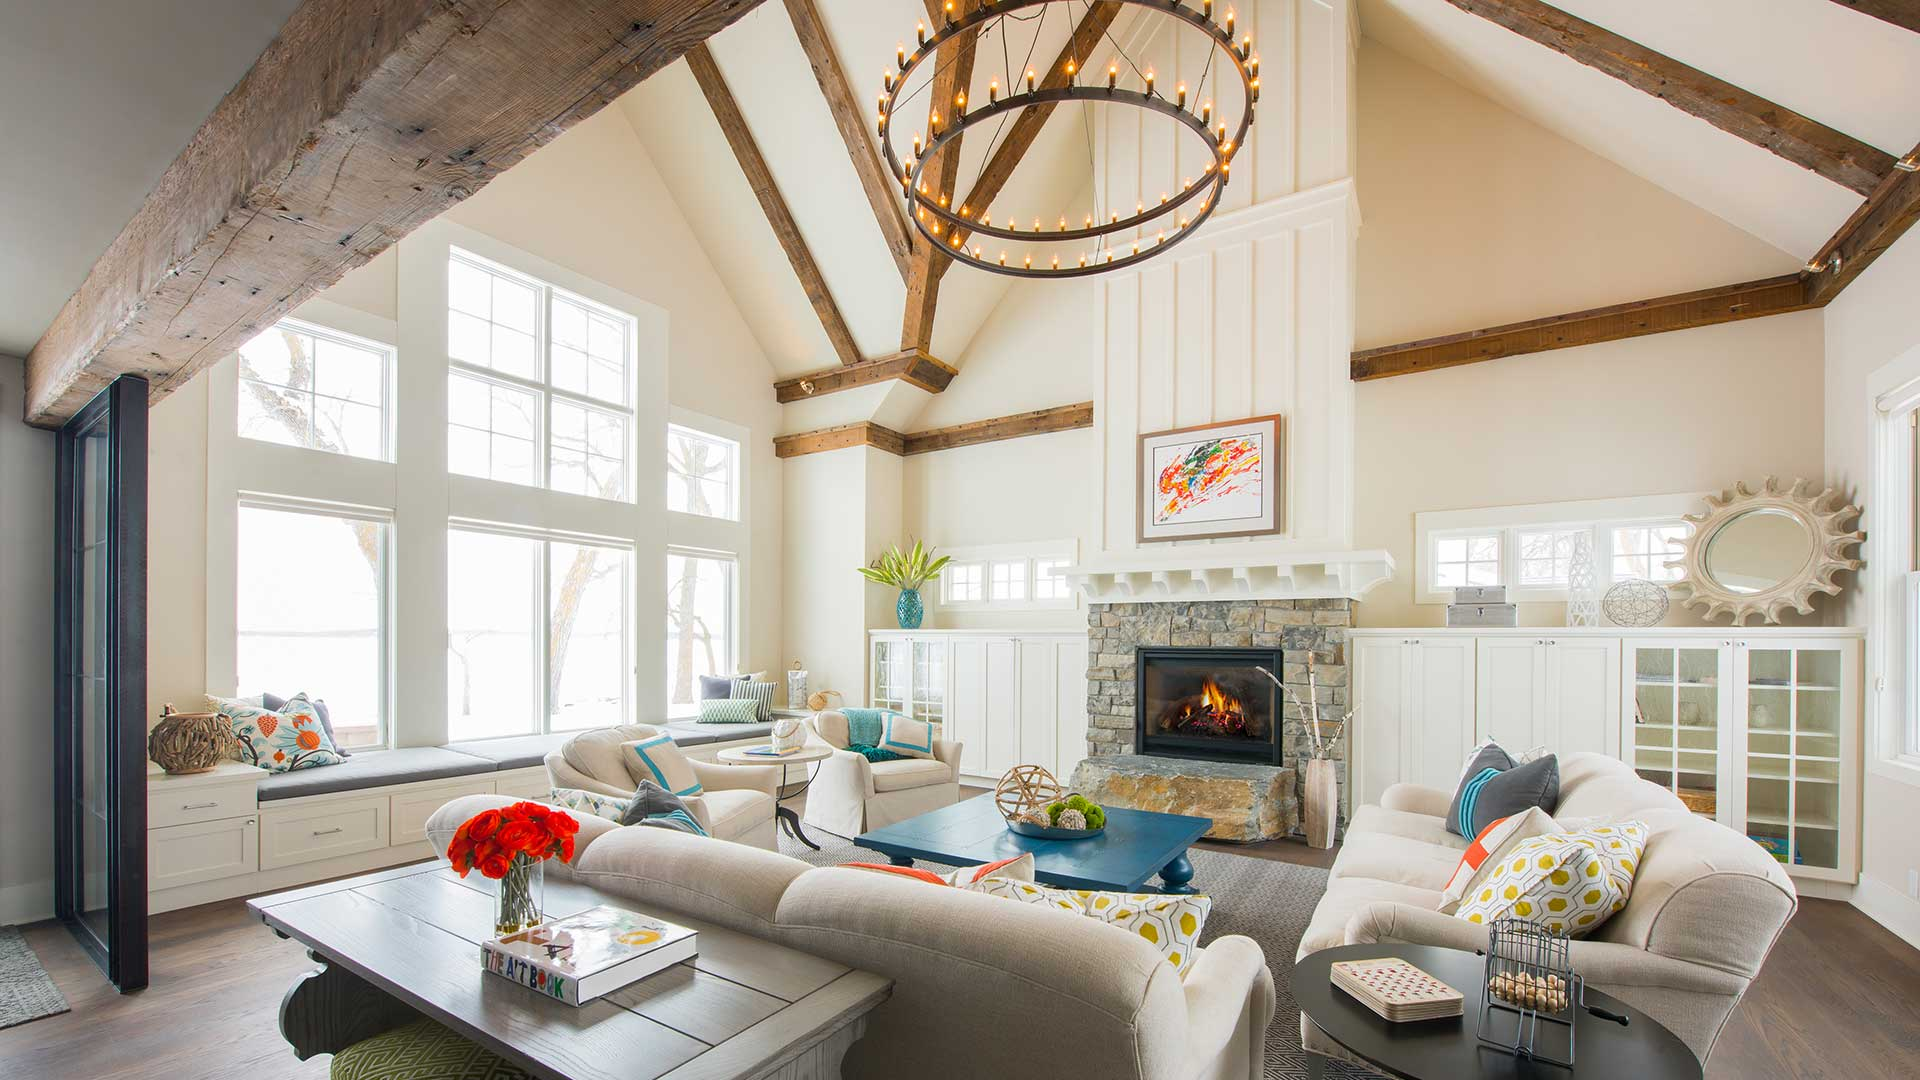 Radiant Homes | Building Homes of Unmatched Quality & Design | Fargo, ND